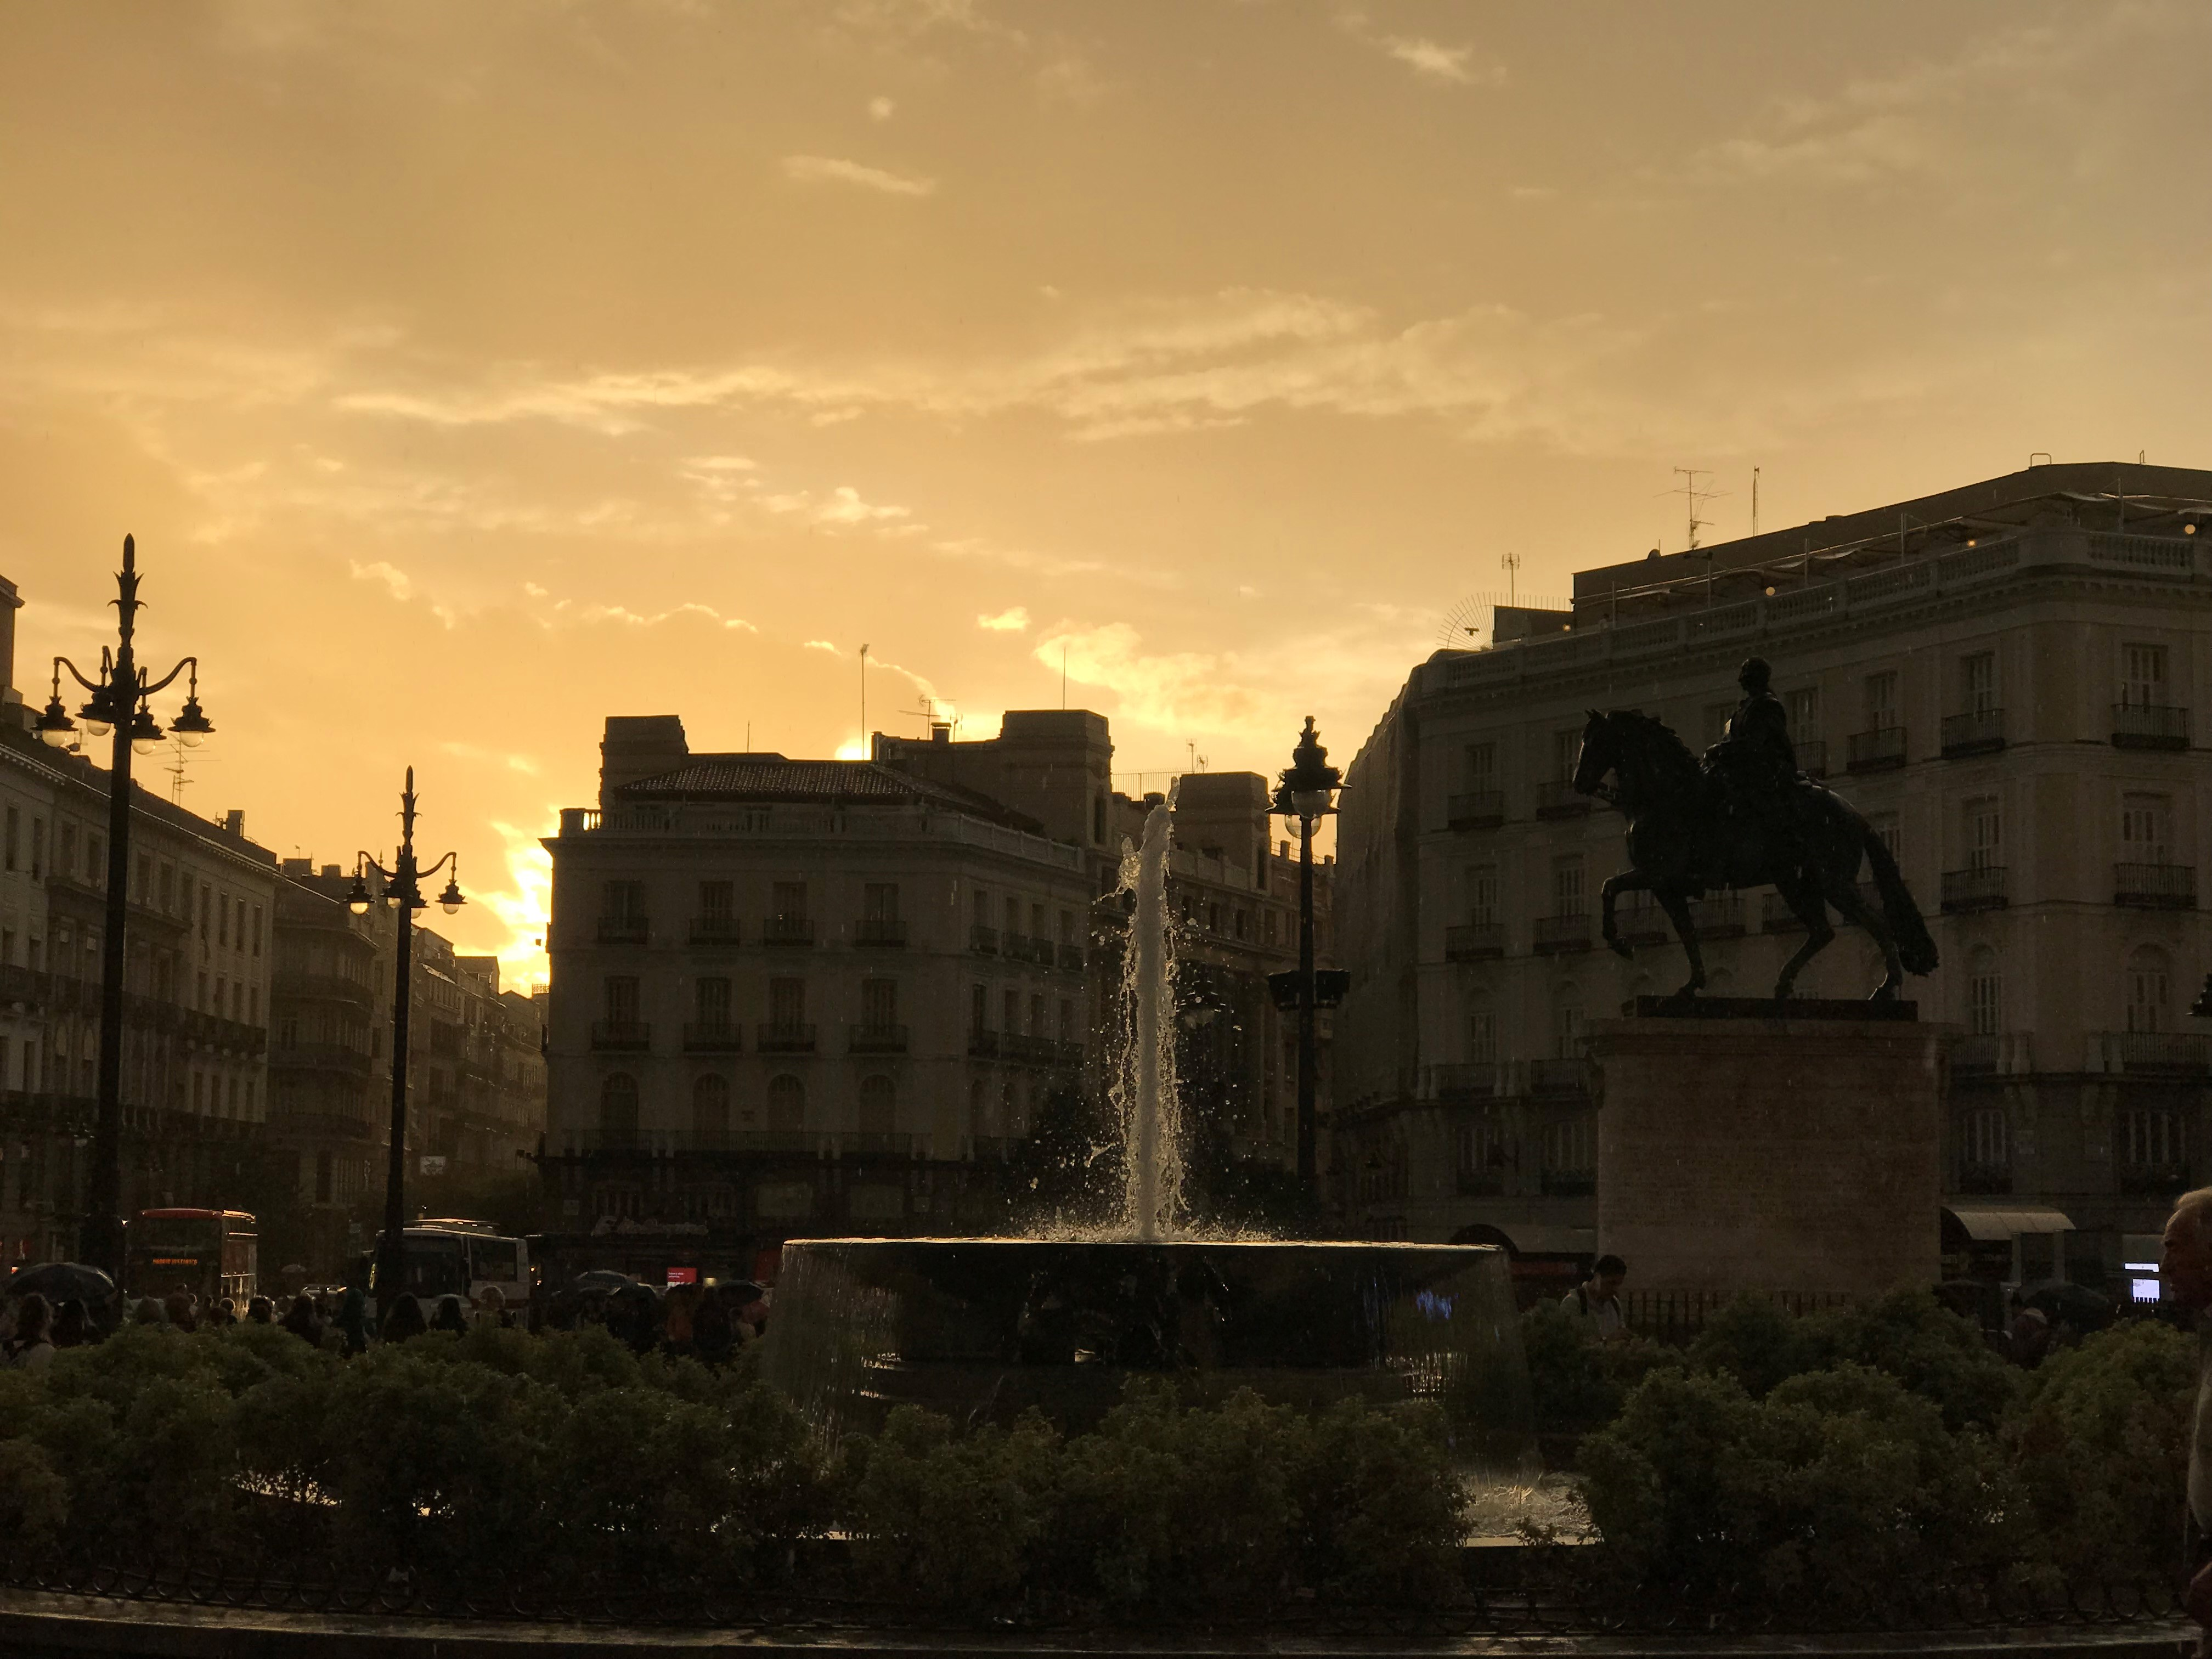 Sunset and Fountain in Madrid, Spain